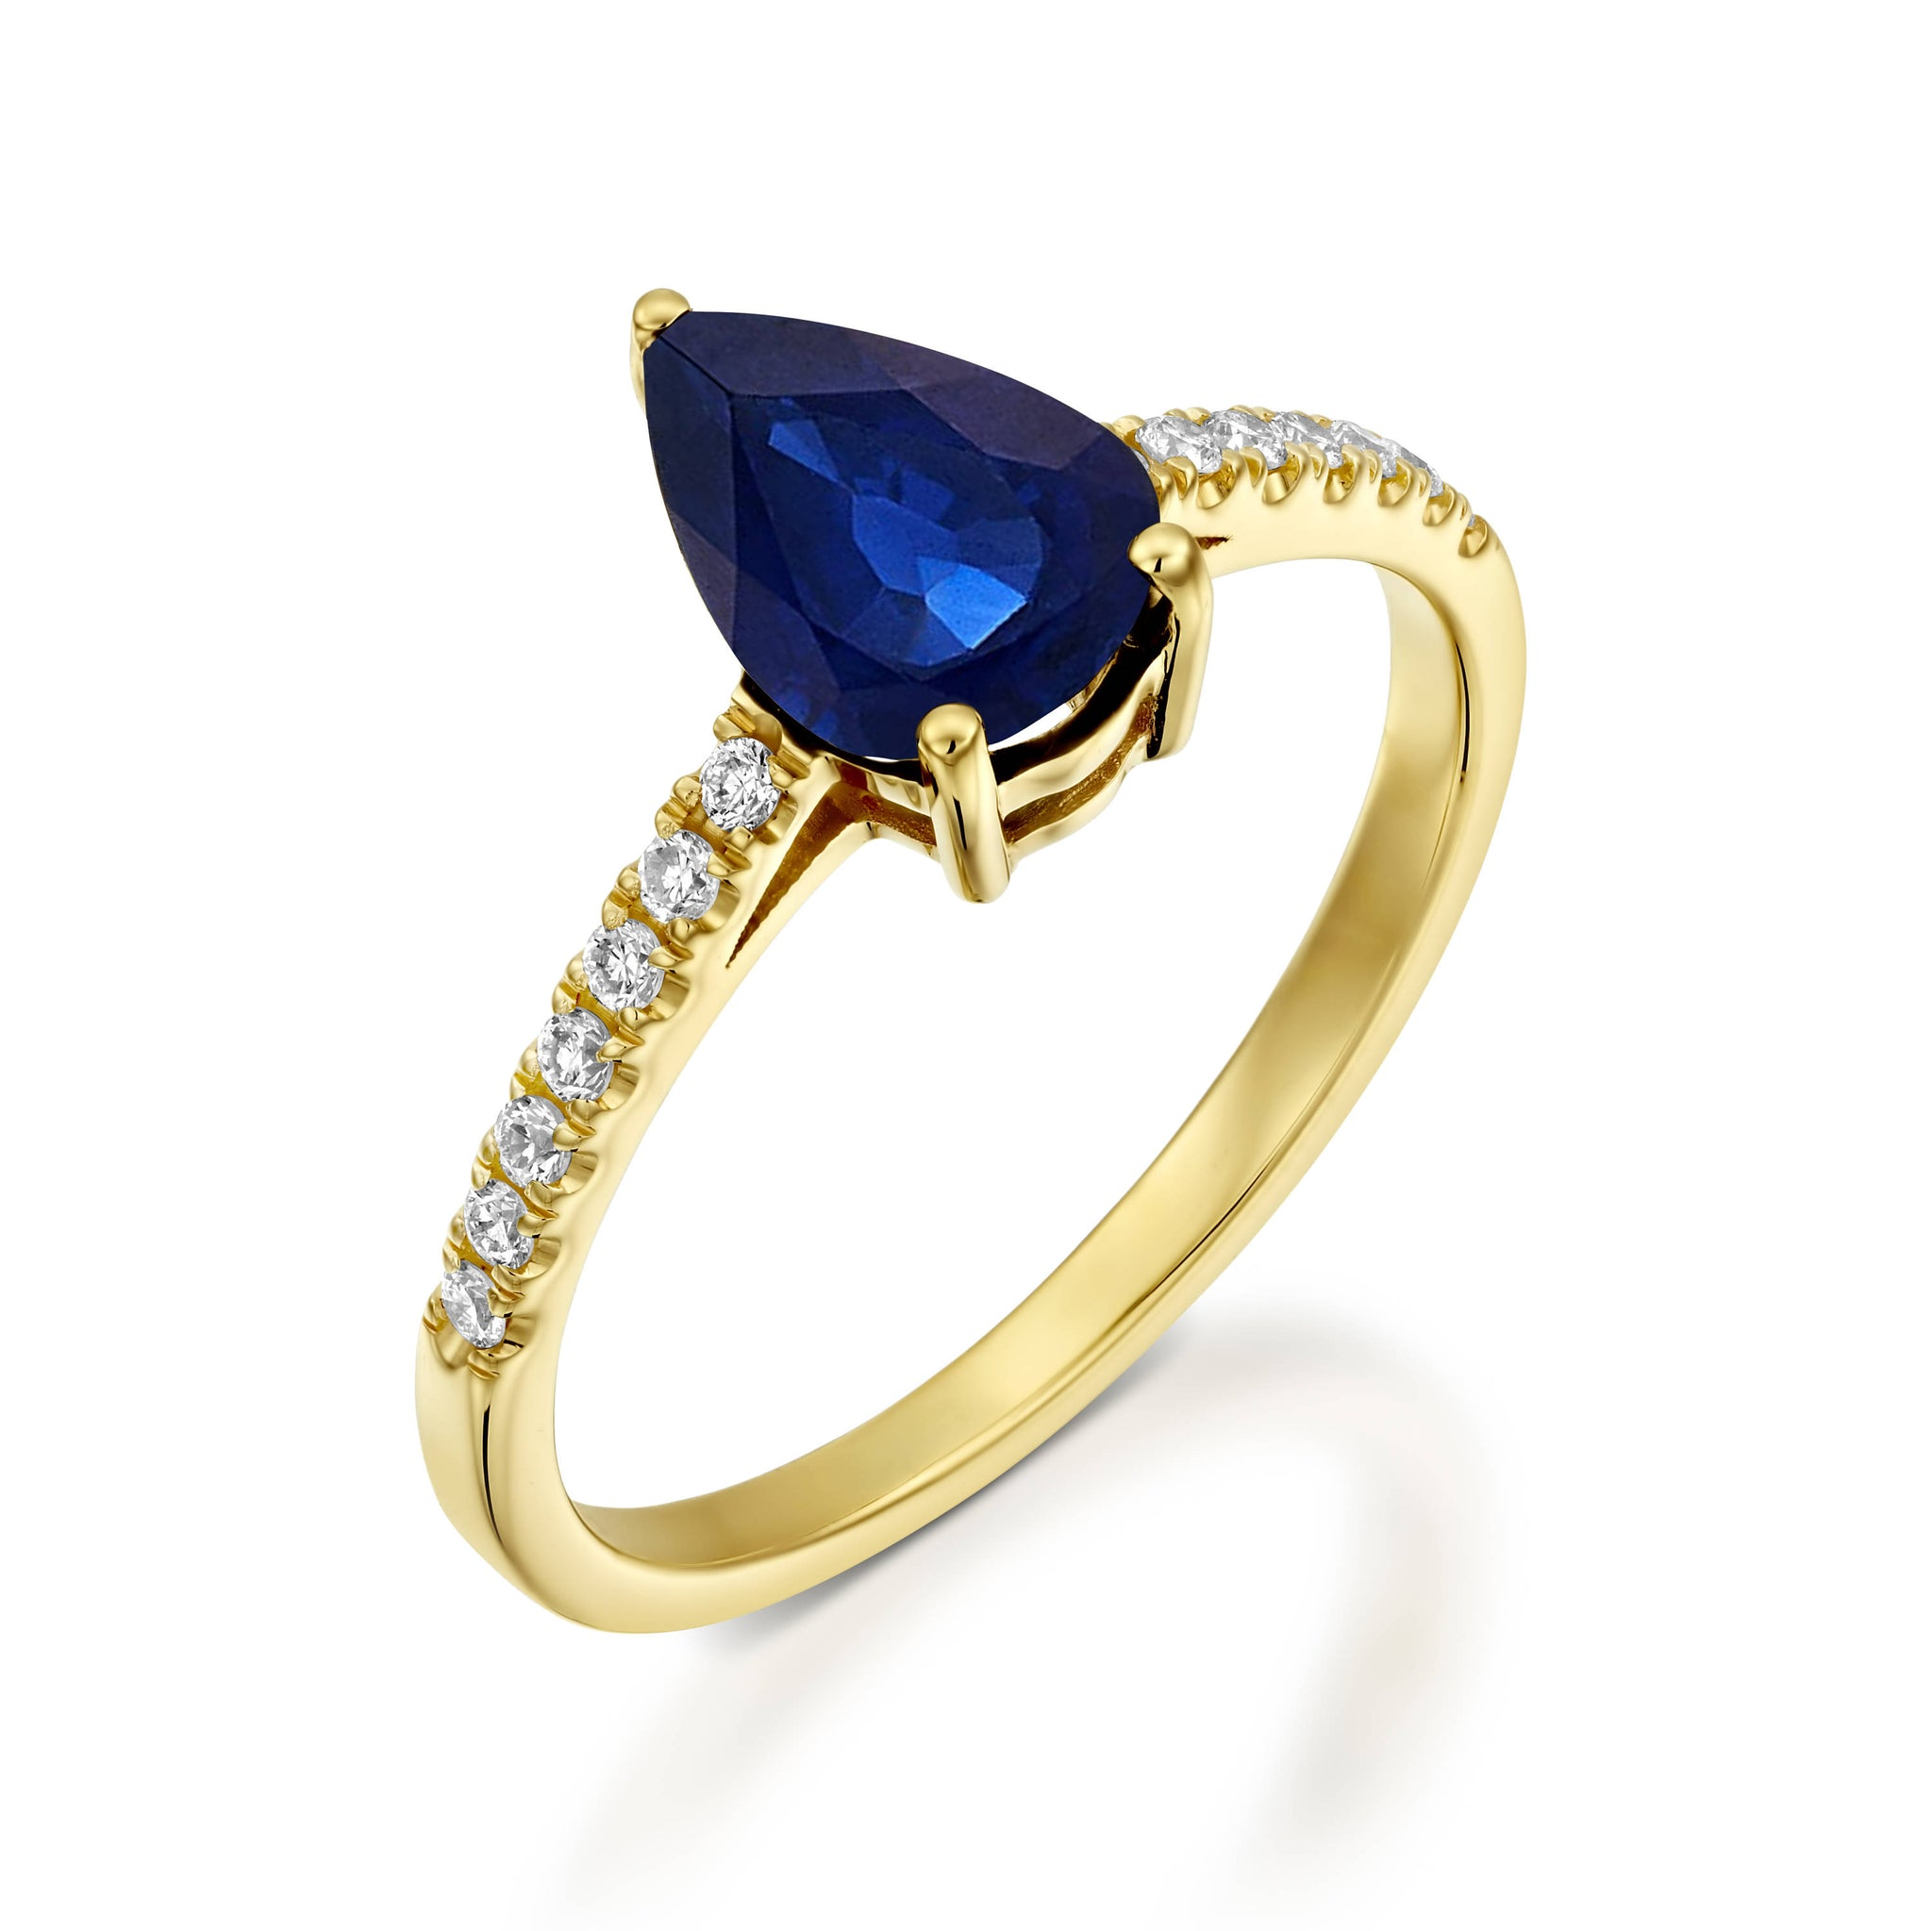 Sapphire Engagement Ring-Art deco Sapphire Engagement Ring -Gold Ring-Anniversary gift-Promised ring - SevenCarat